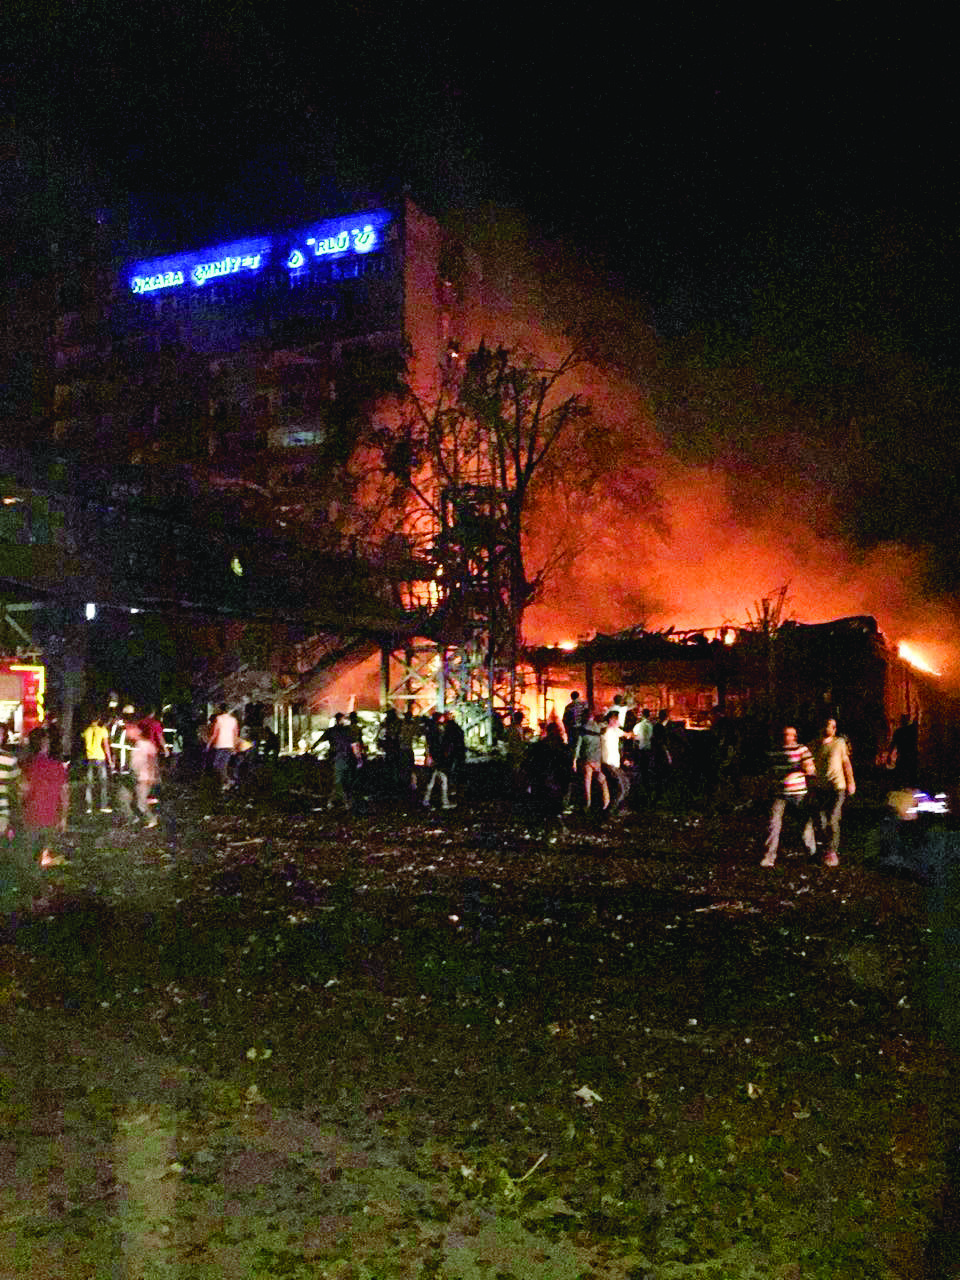 3	F-16s controlled by coup pilots bombed the police headquarters, which was also under fire from tanks and helicopters.